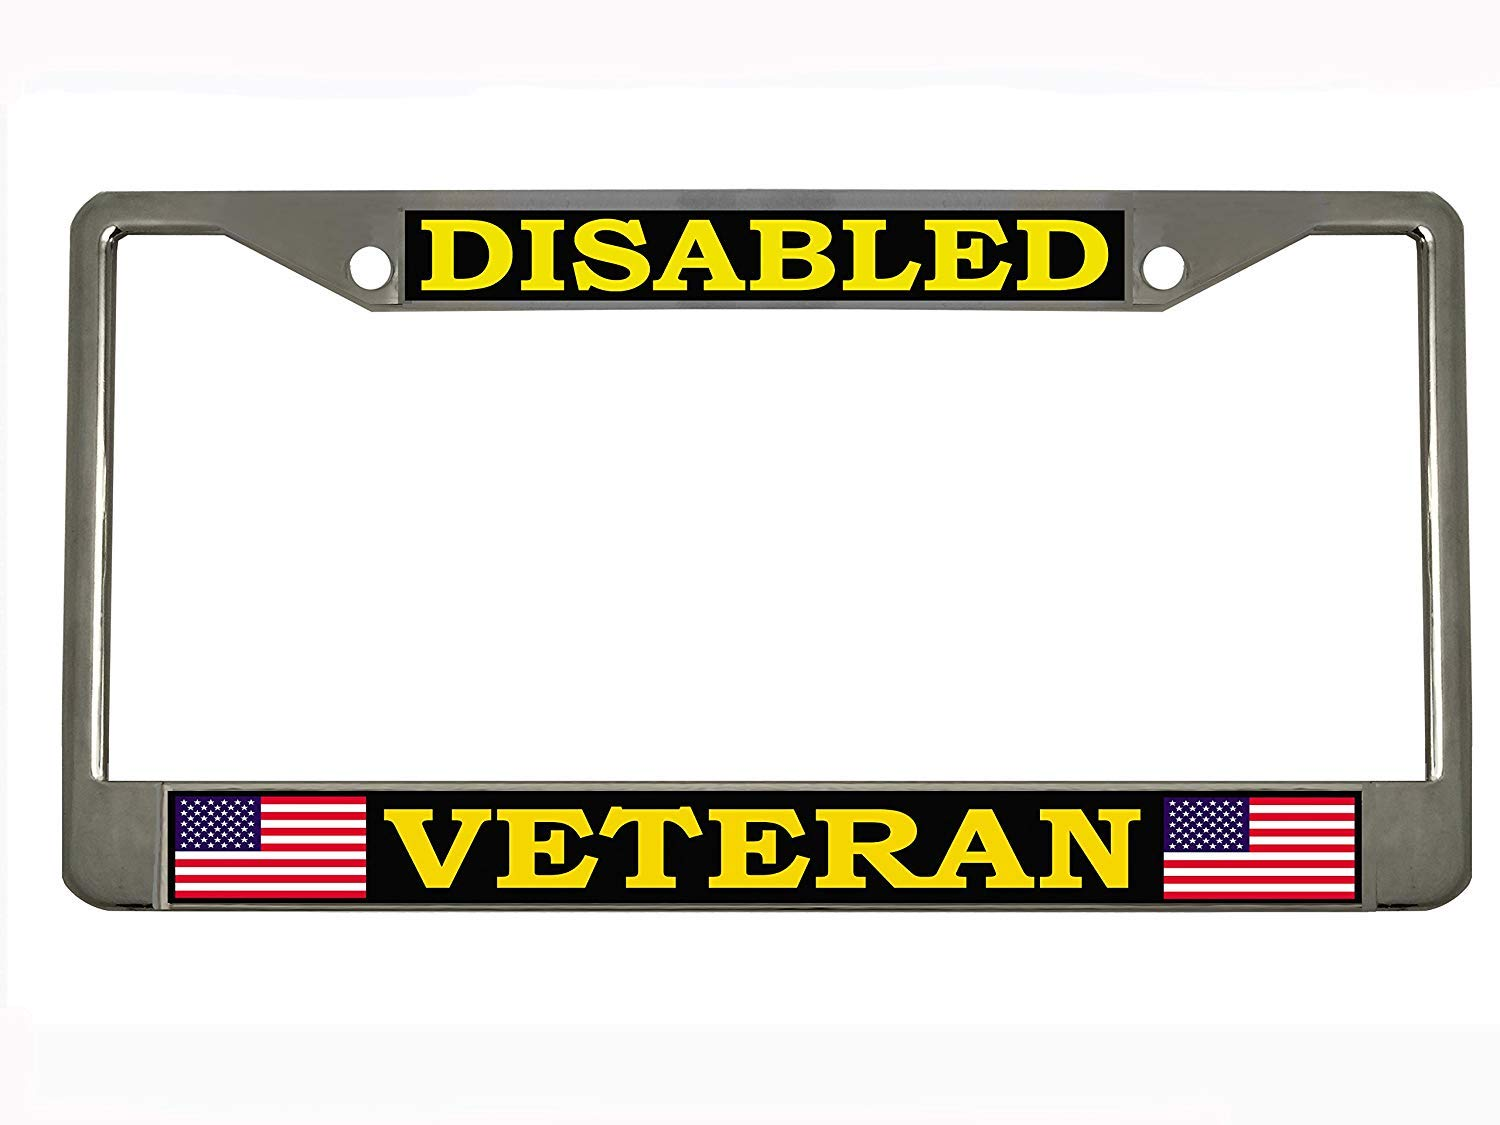 Disabled Veteran Chrome License Plate Frame Tag STHANCAT OF TAMPA